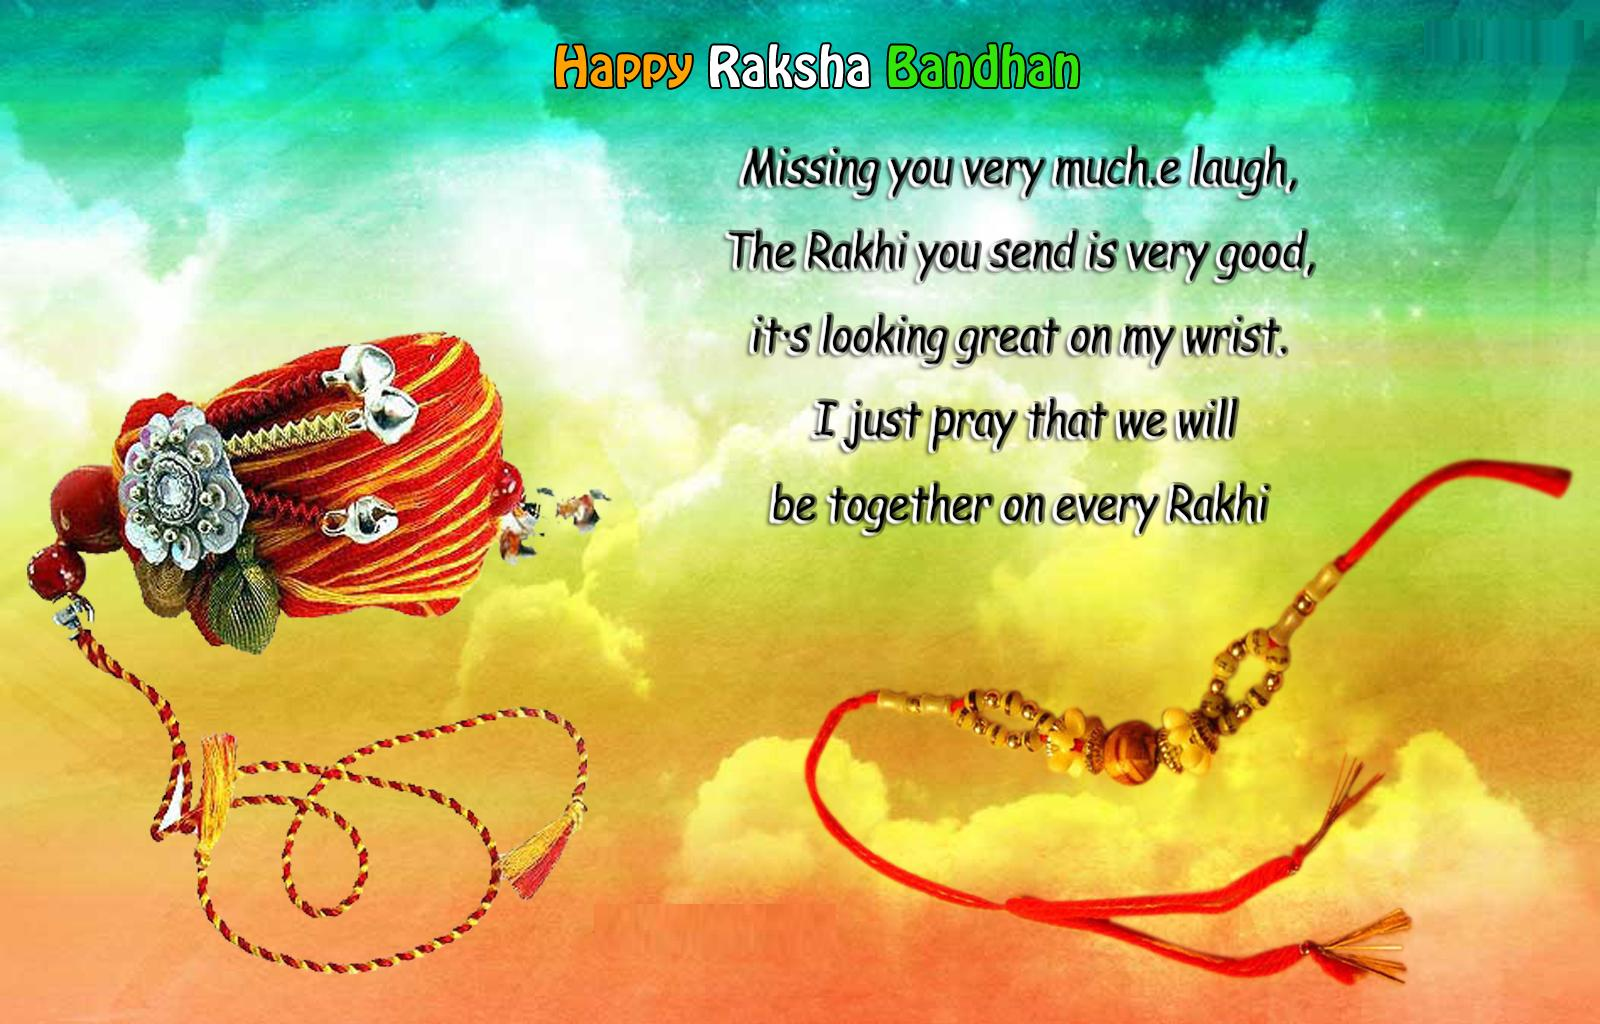 Raksha bandhan pictures images wallpaper hd photos happy raksha happy raksha bandhan hd pictures with messages kristyandbryce Image collections